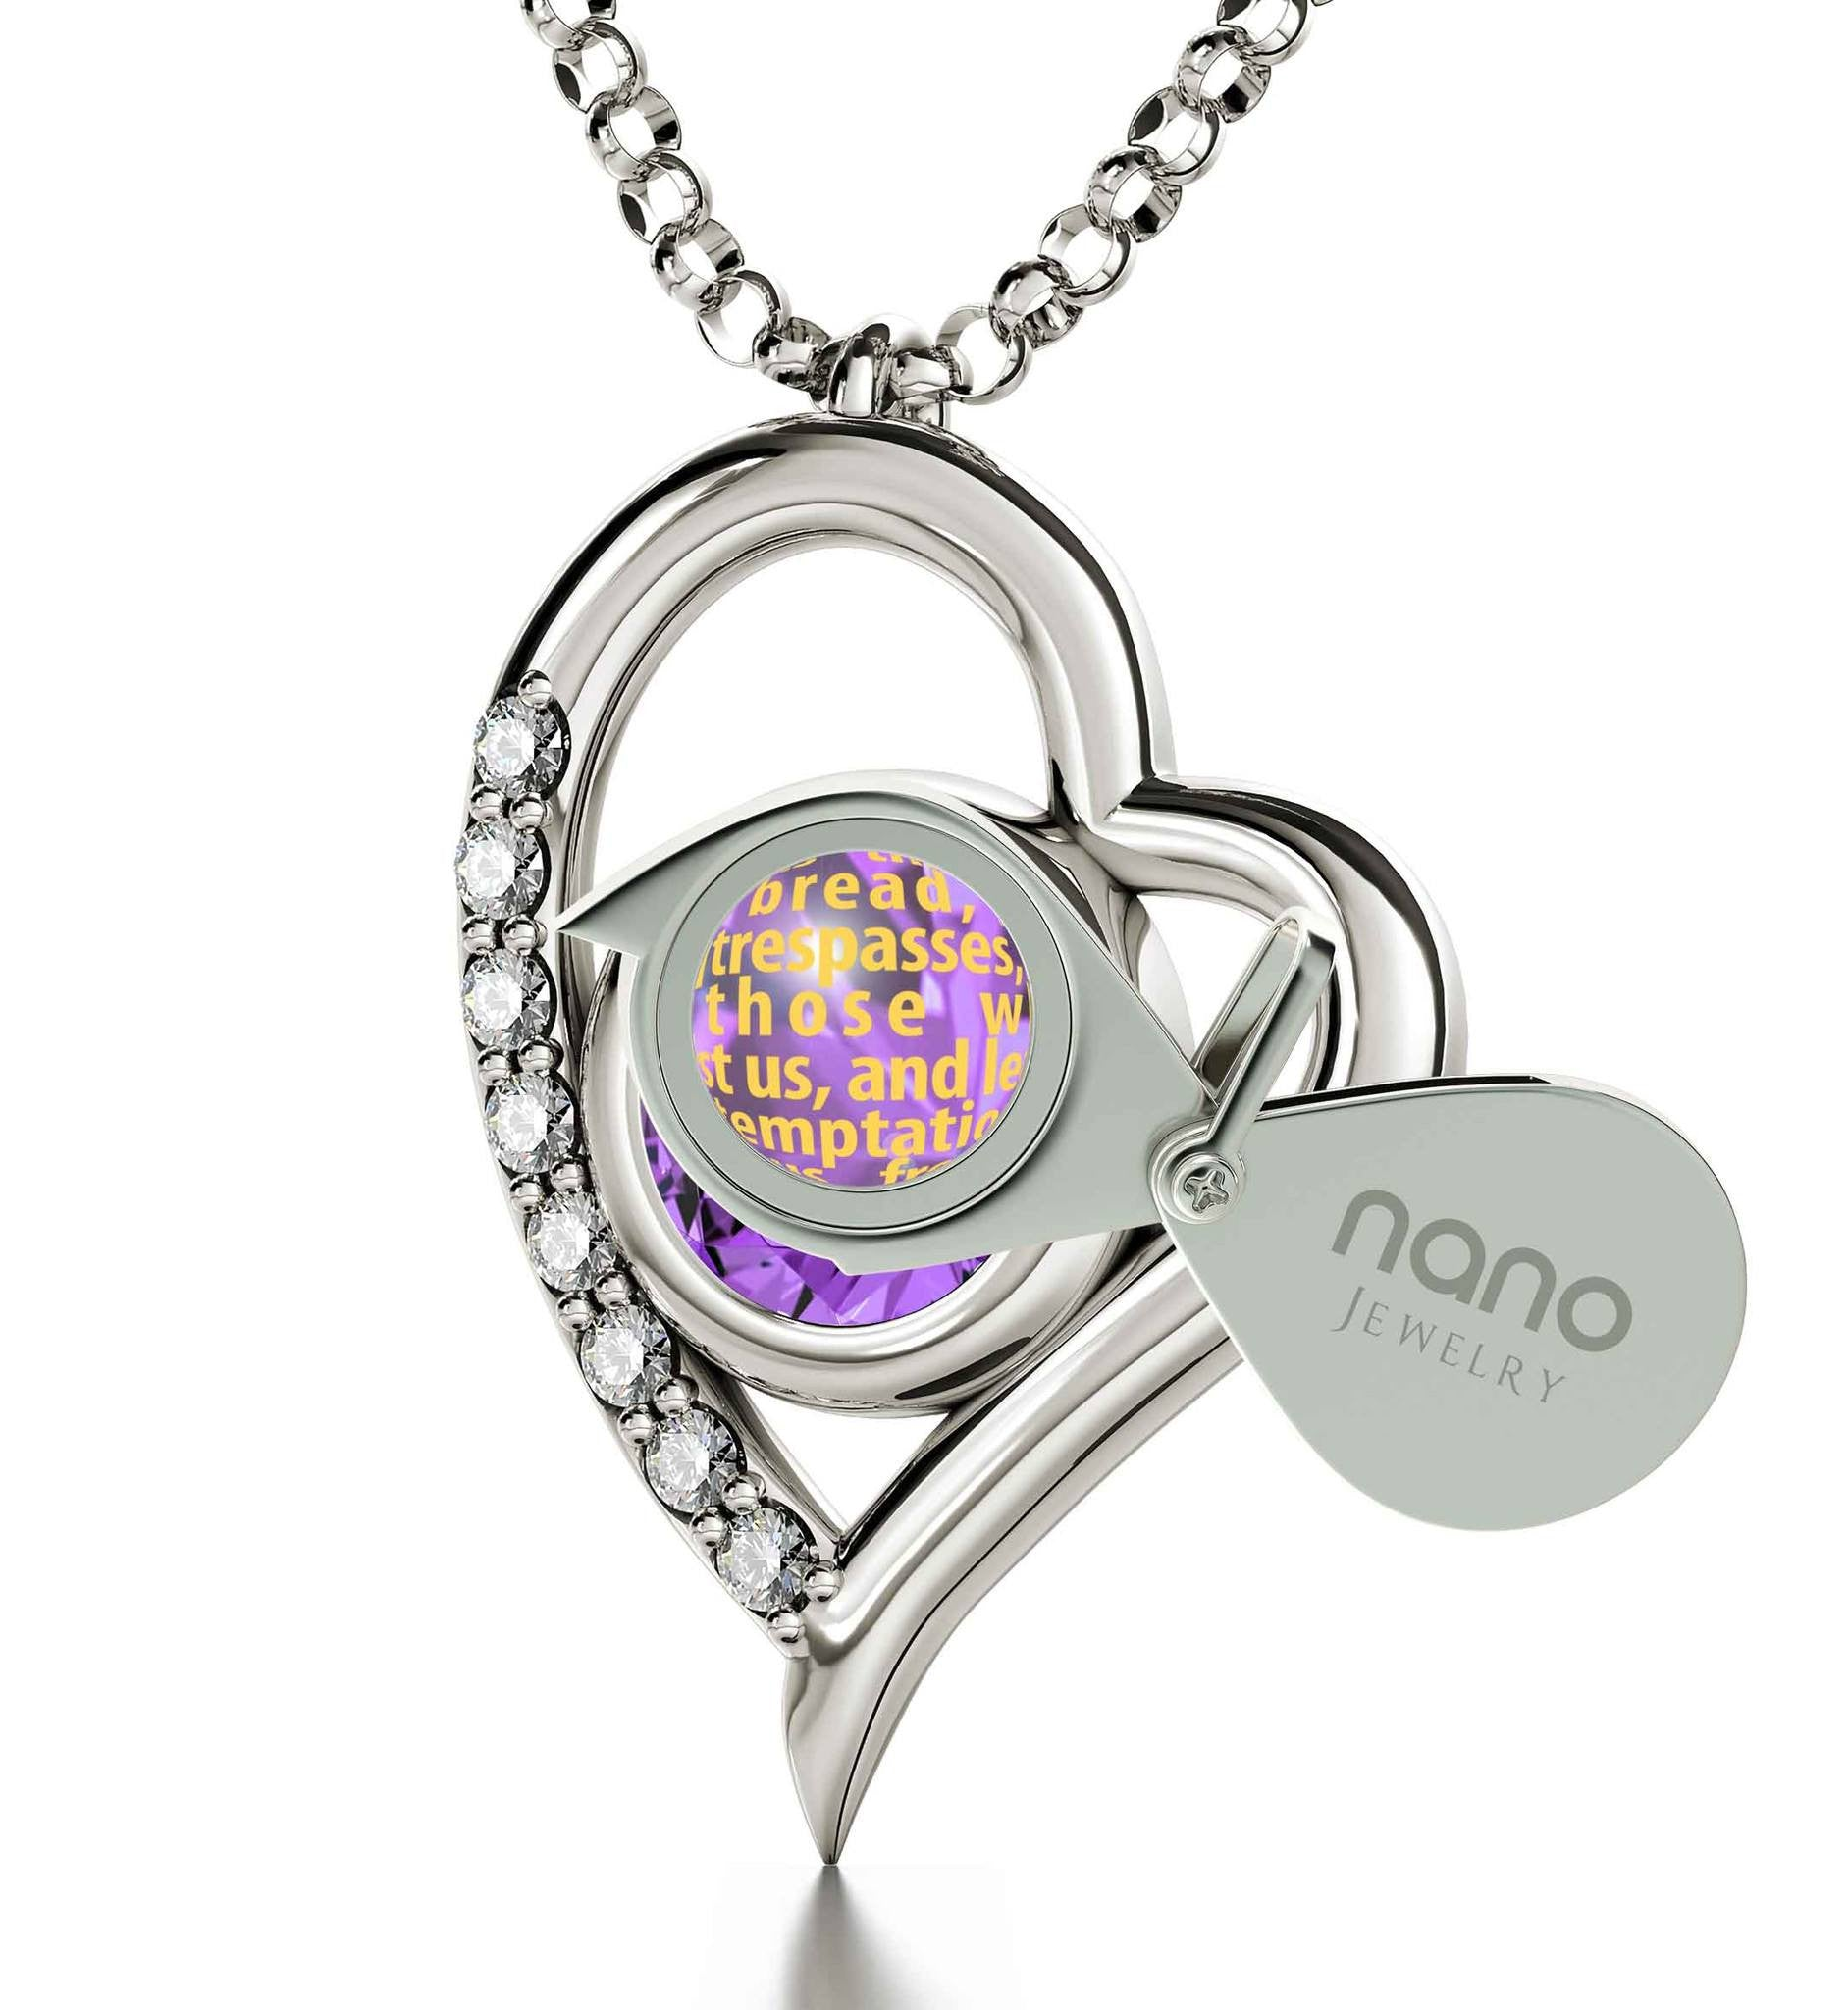 Words to The Lord\'s Prayer Inscribed on Fine Nano Jewelry - Gift Now!